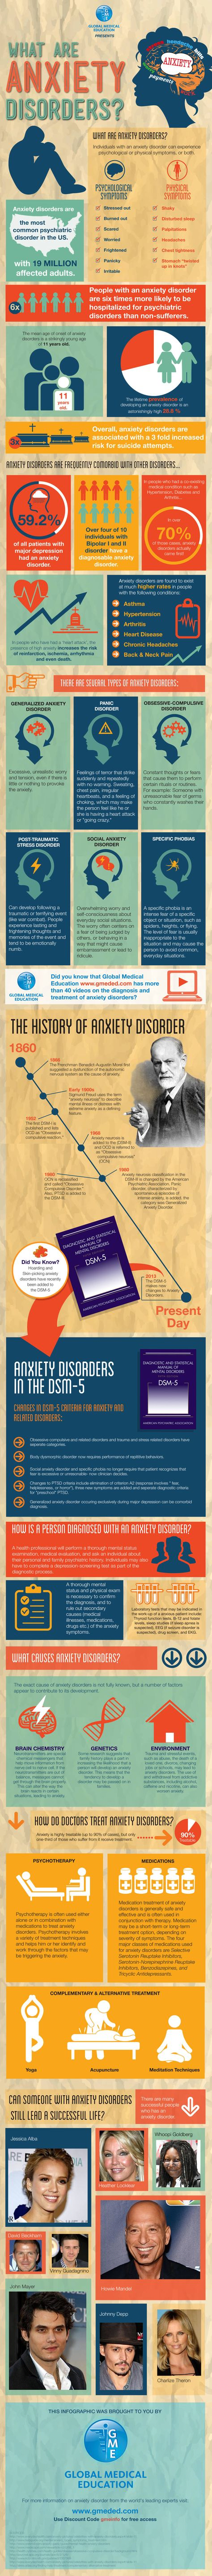 Just what are anxiety disorders anyway? Anxiety disorders are the commonest psychiatric illnesses globally. And while there is no cure for anxiety disorders, there are very effective treatments available with a good evidence base.